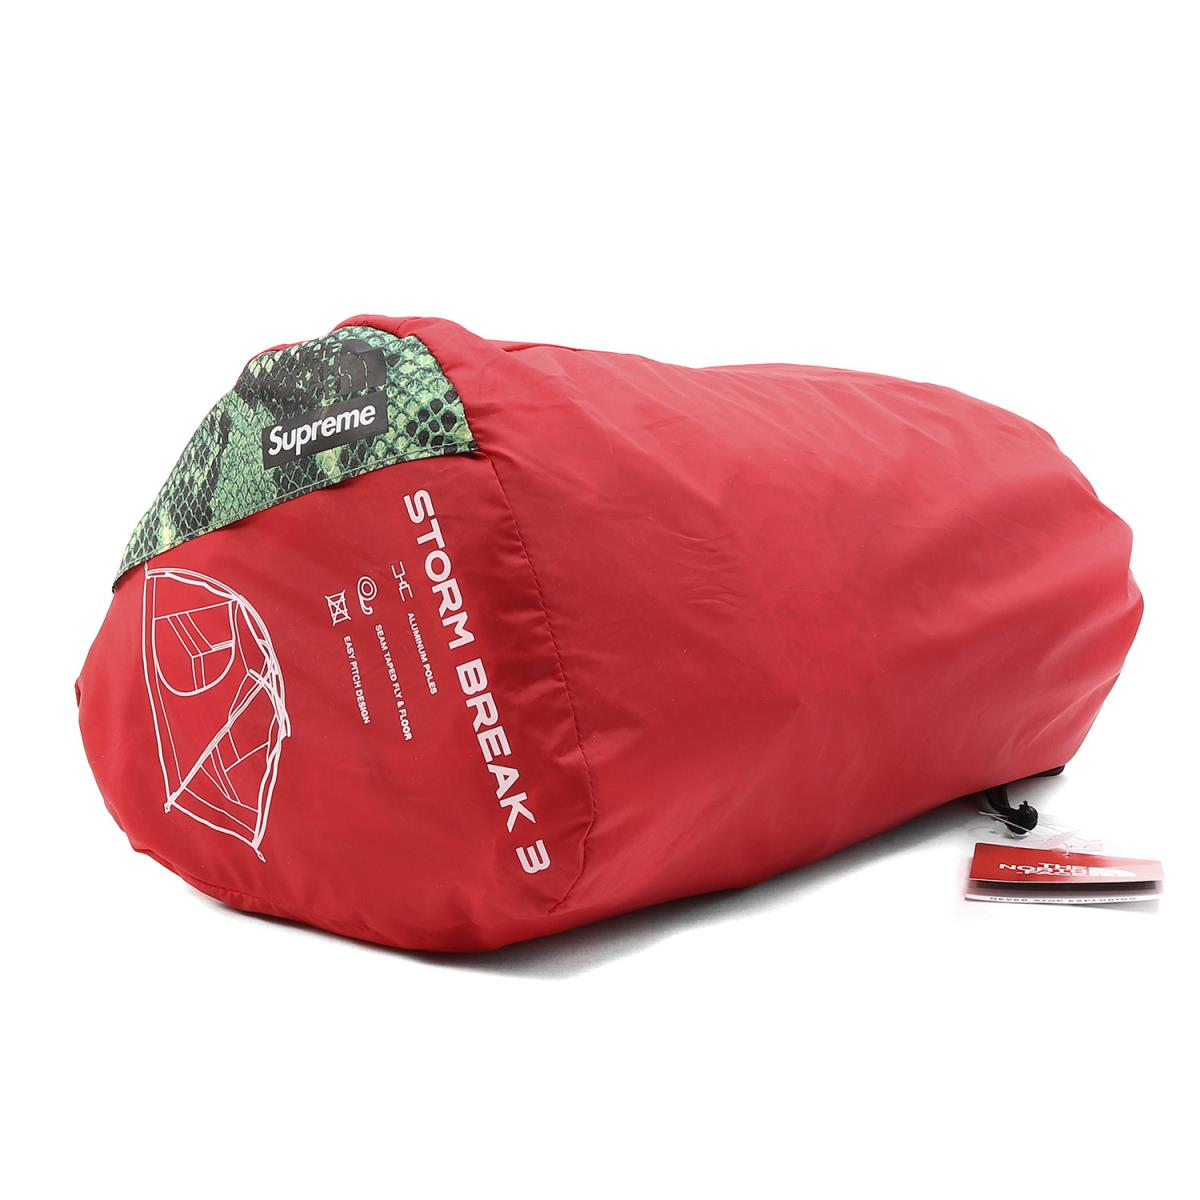 Supreme (シュプリーム) 18S/S ×THE NORTH FACE スネーク柄テント(Snakeskin Taped Seam 3 Tent) グリーンスネークプリント 【メンズ】【K2170】【あす楽☆対応可】